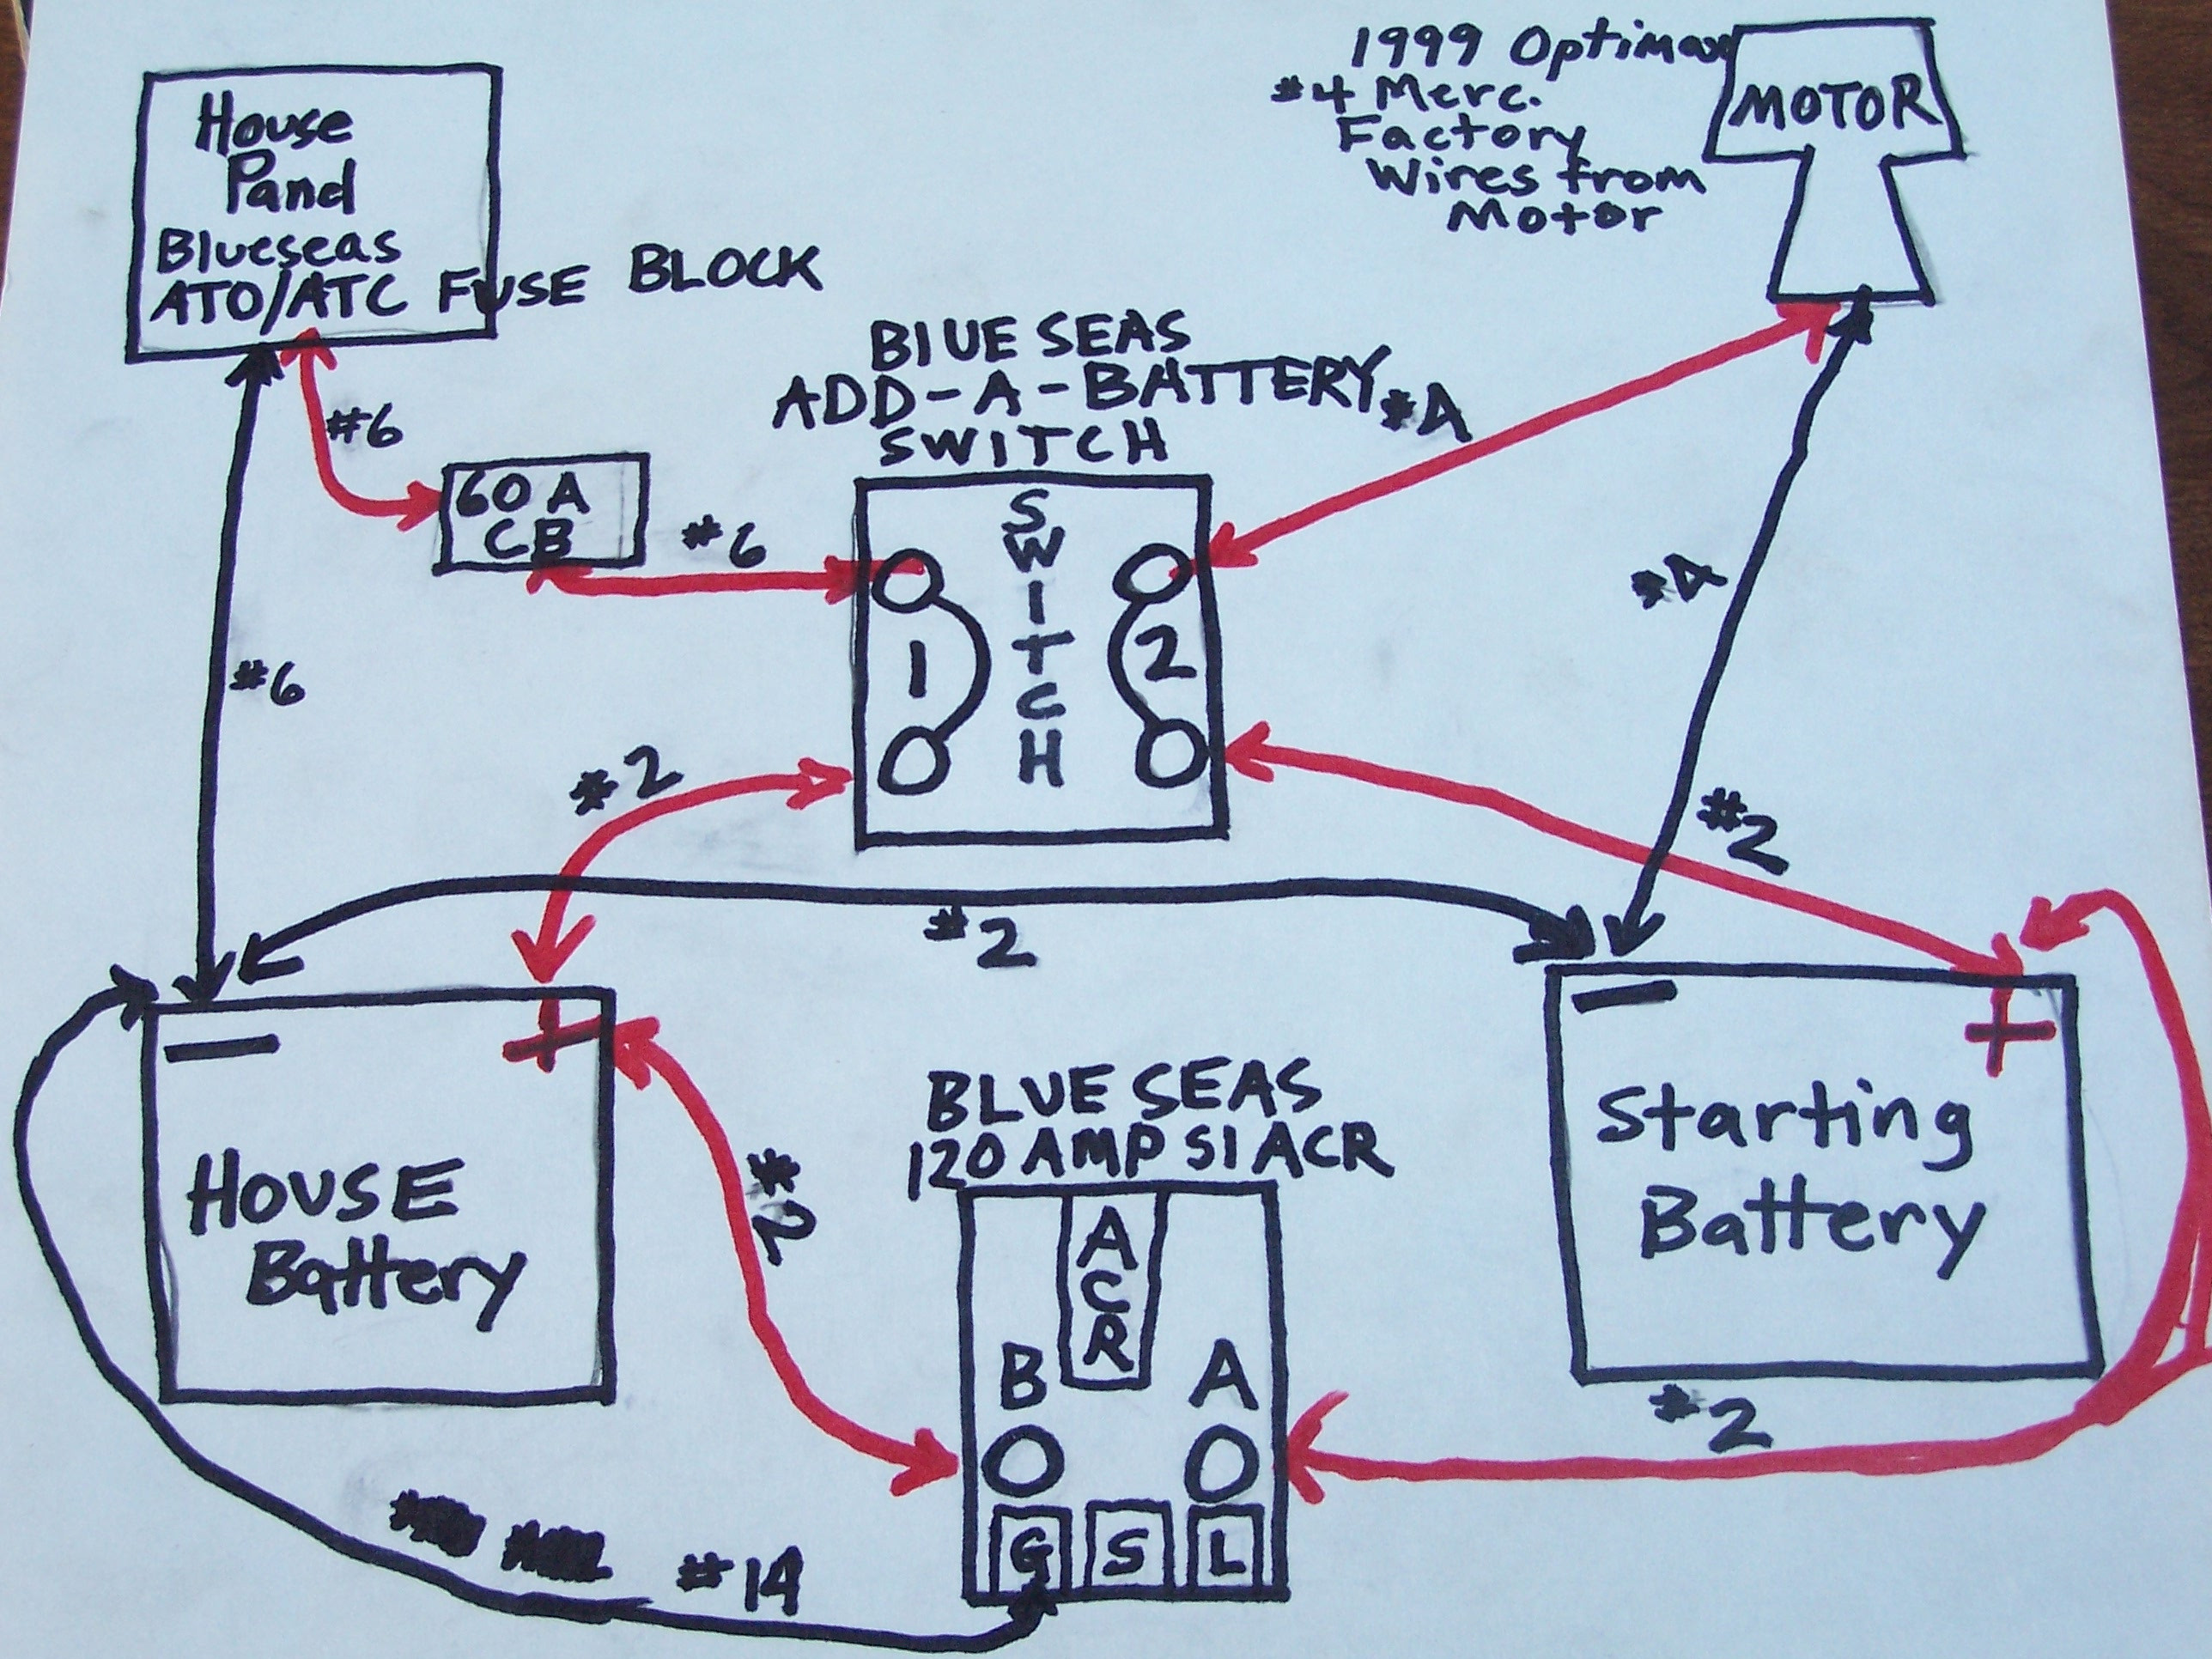 Blue Seas Add A Battery Wiring Diagram from static-cdn.imageservice.cloud